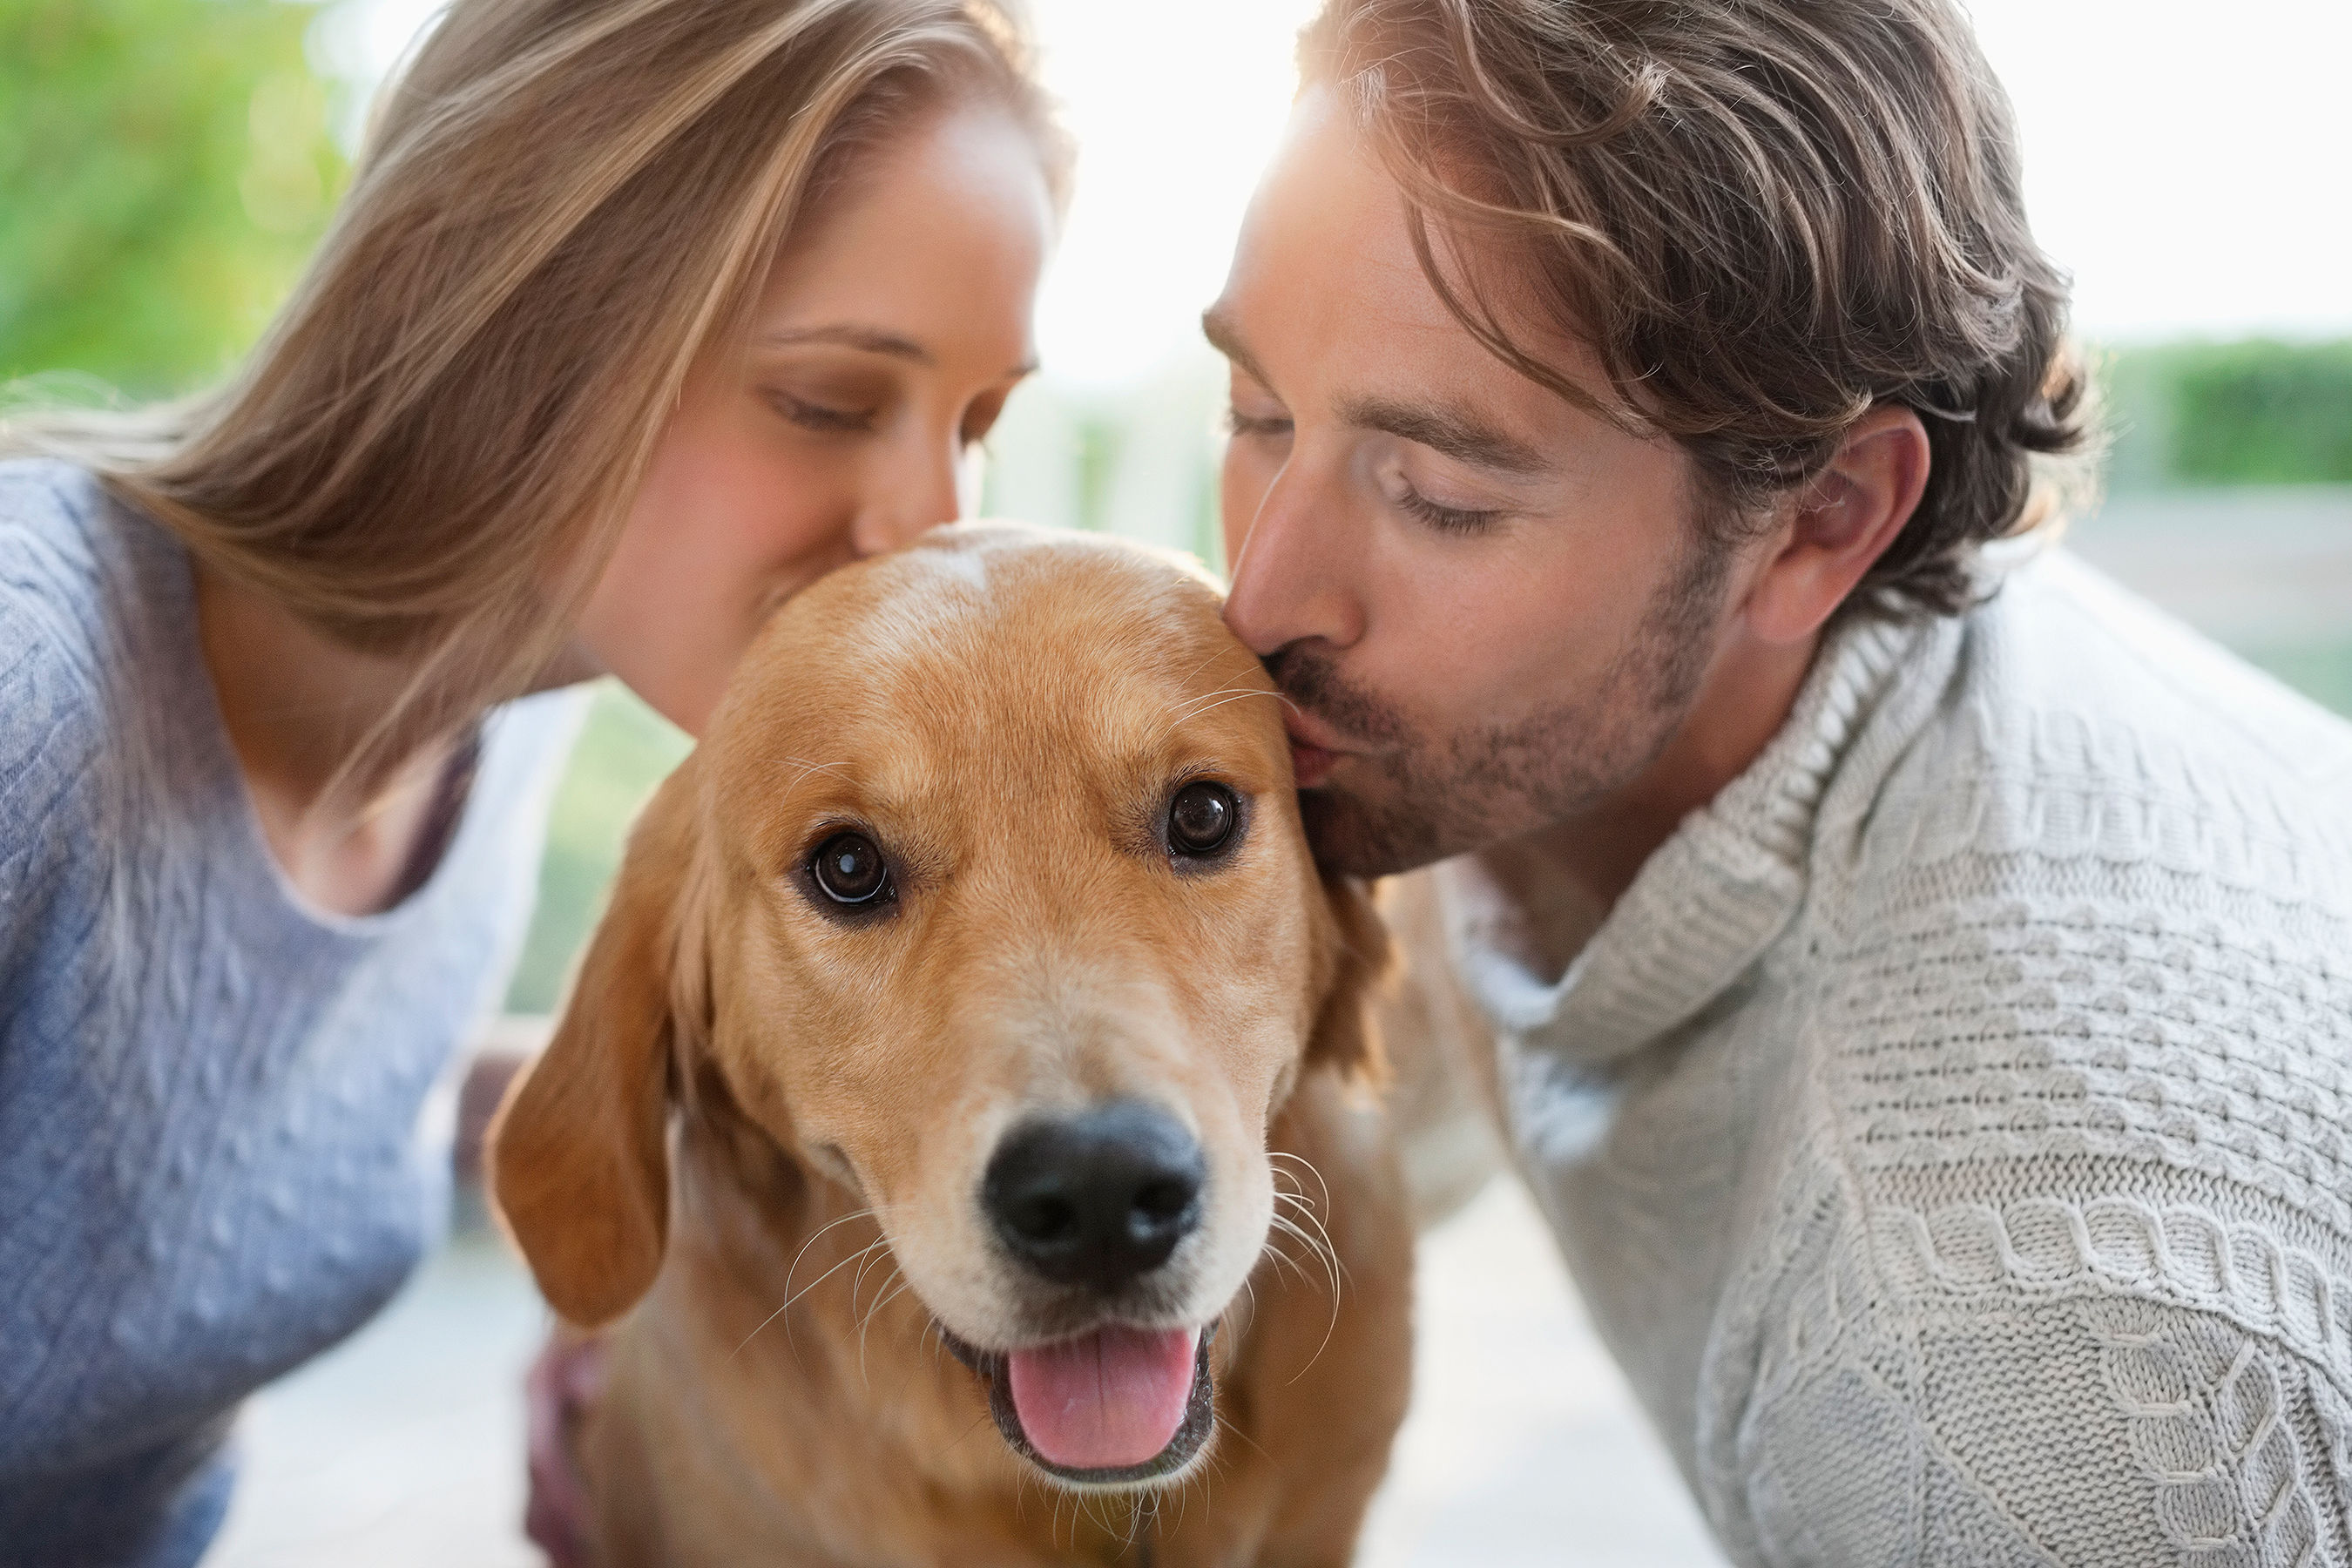 Survey Finds Over Half of Dog Owners Kiss Their Pooches More Than Their Partners